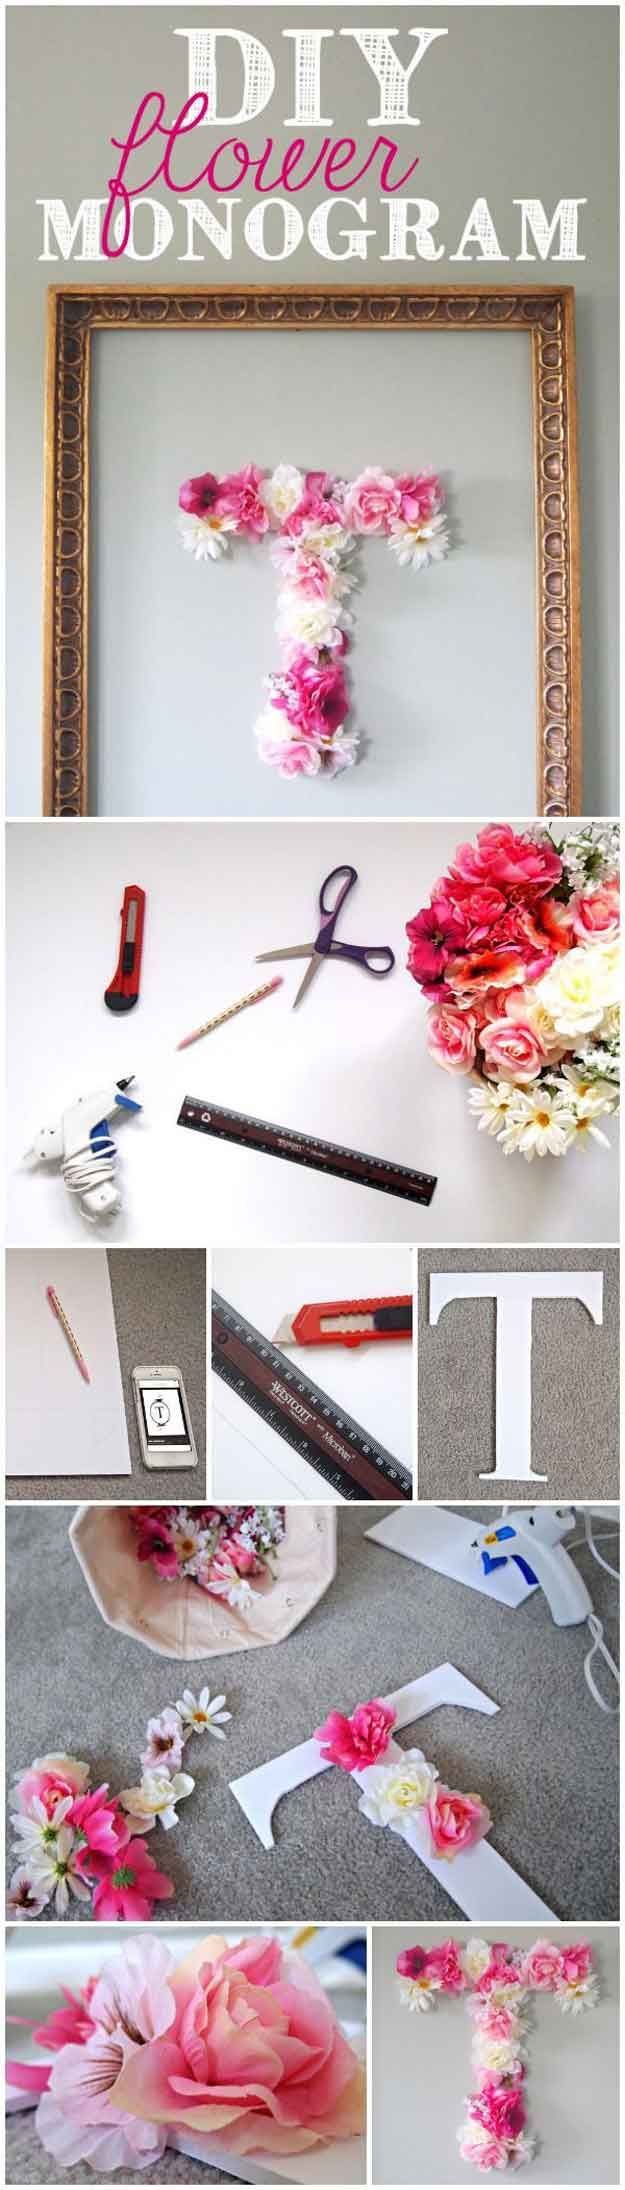 Projects For Teens Bedrooms